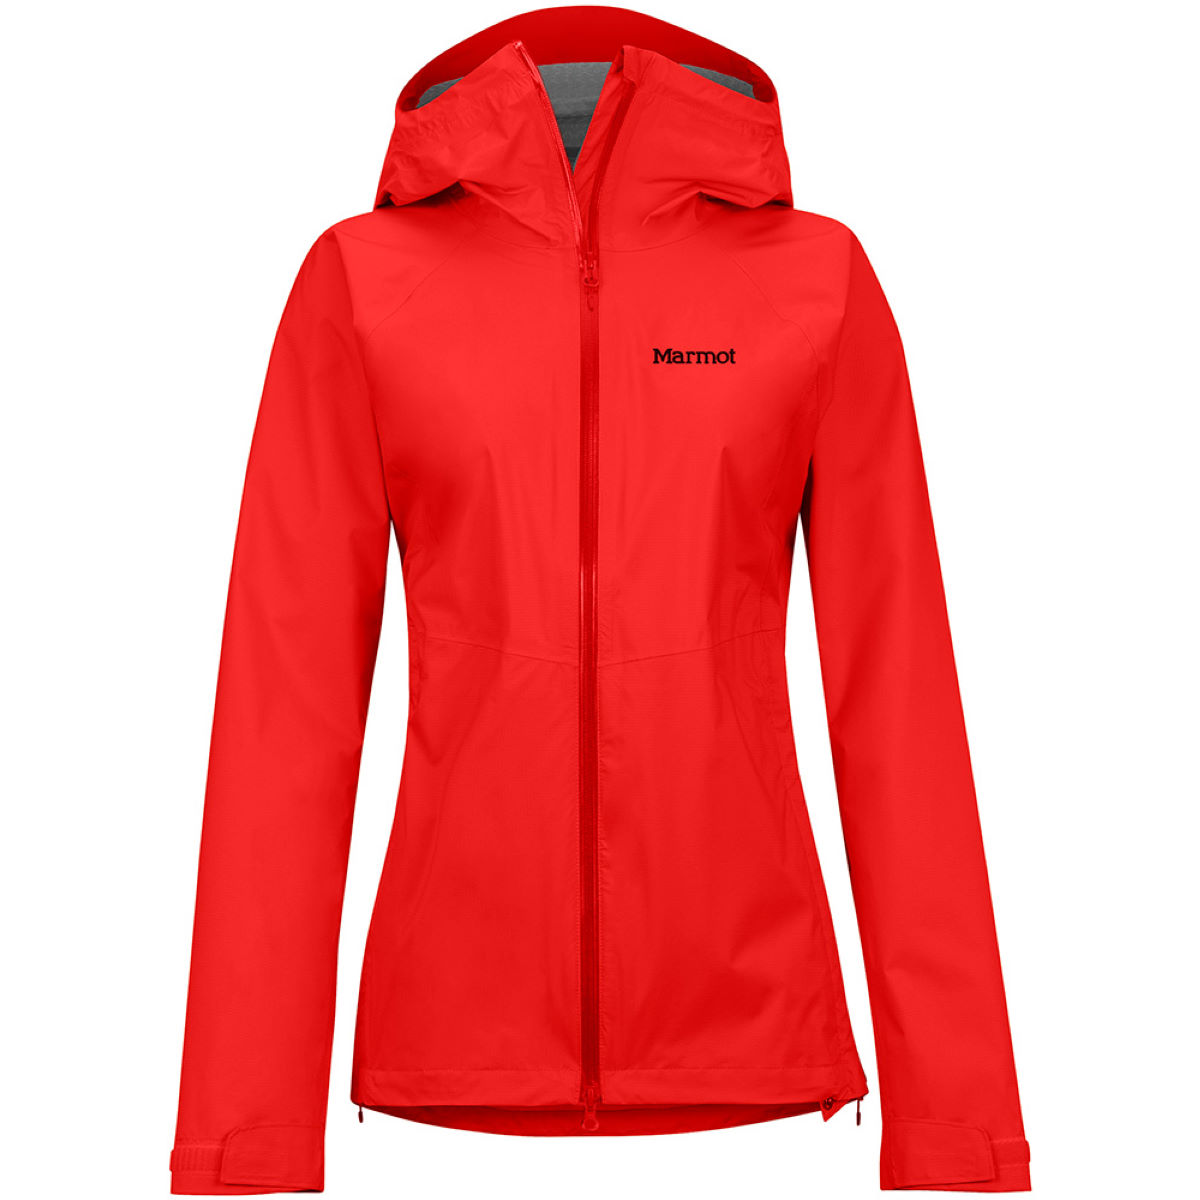 Marmot Marmot Womens PreCip Stretch Waterproof Jacket   Jackets